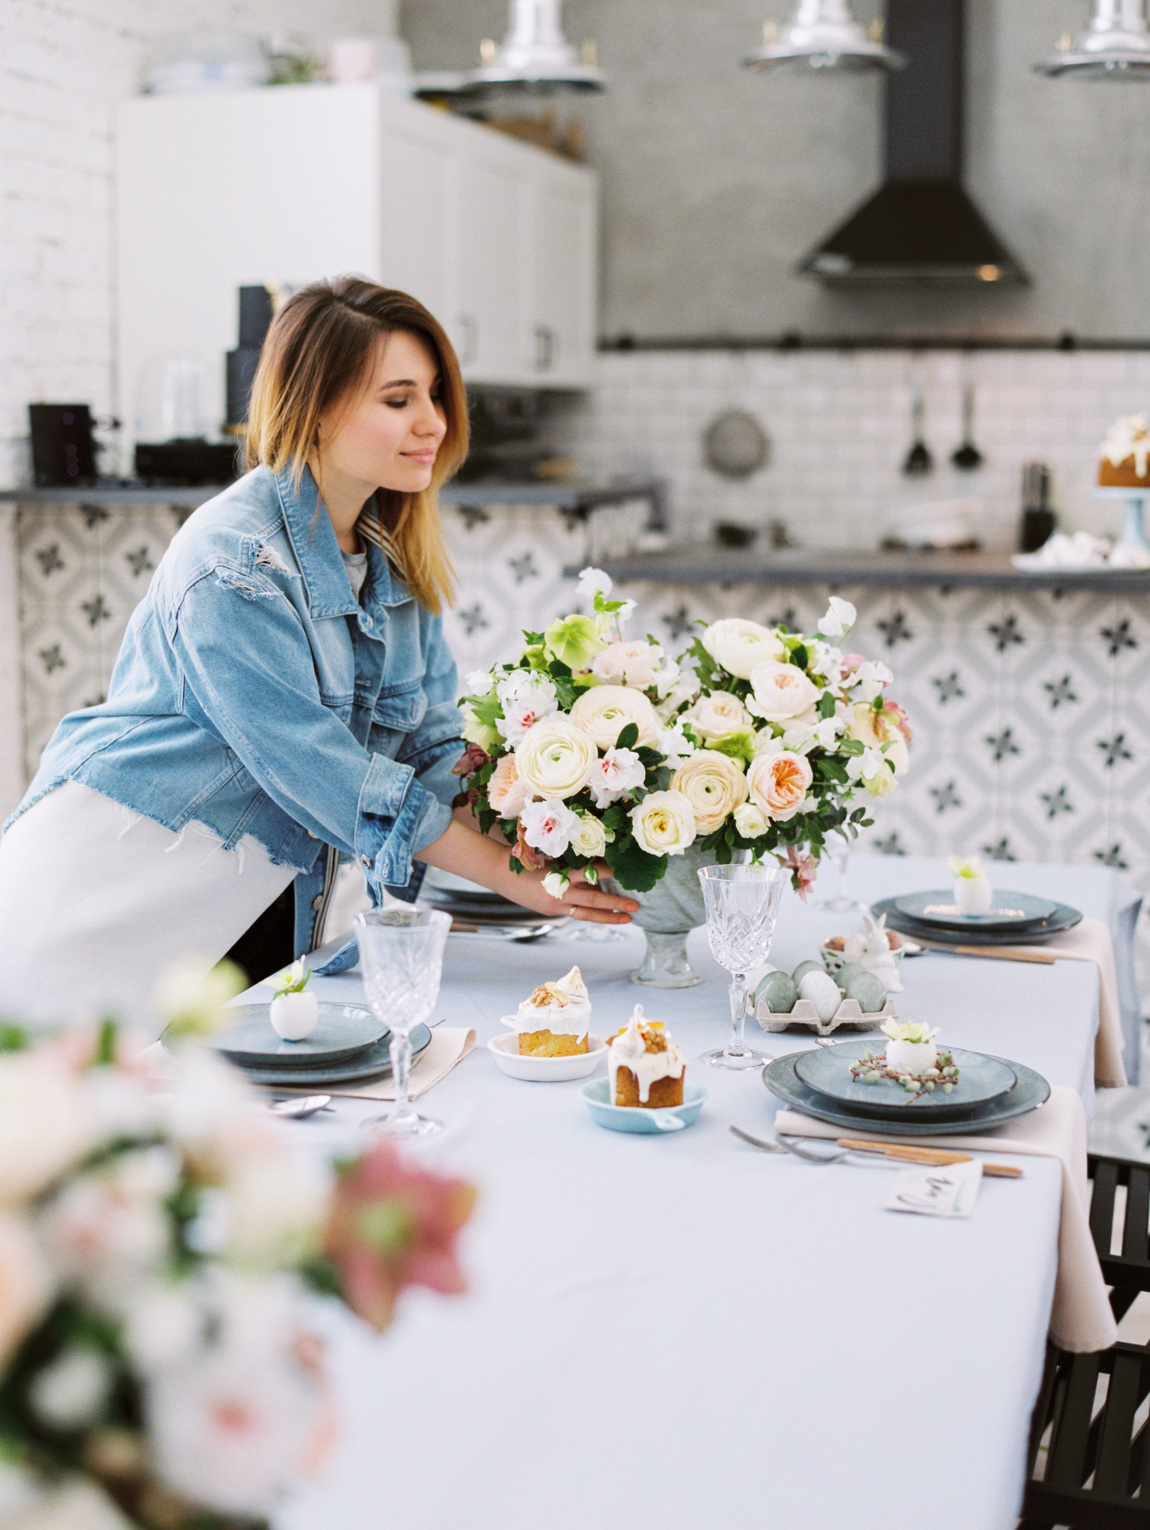 Charming woman setting beautiful easter table